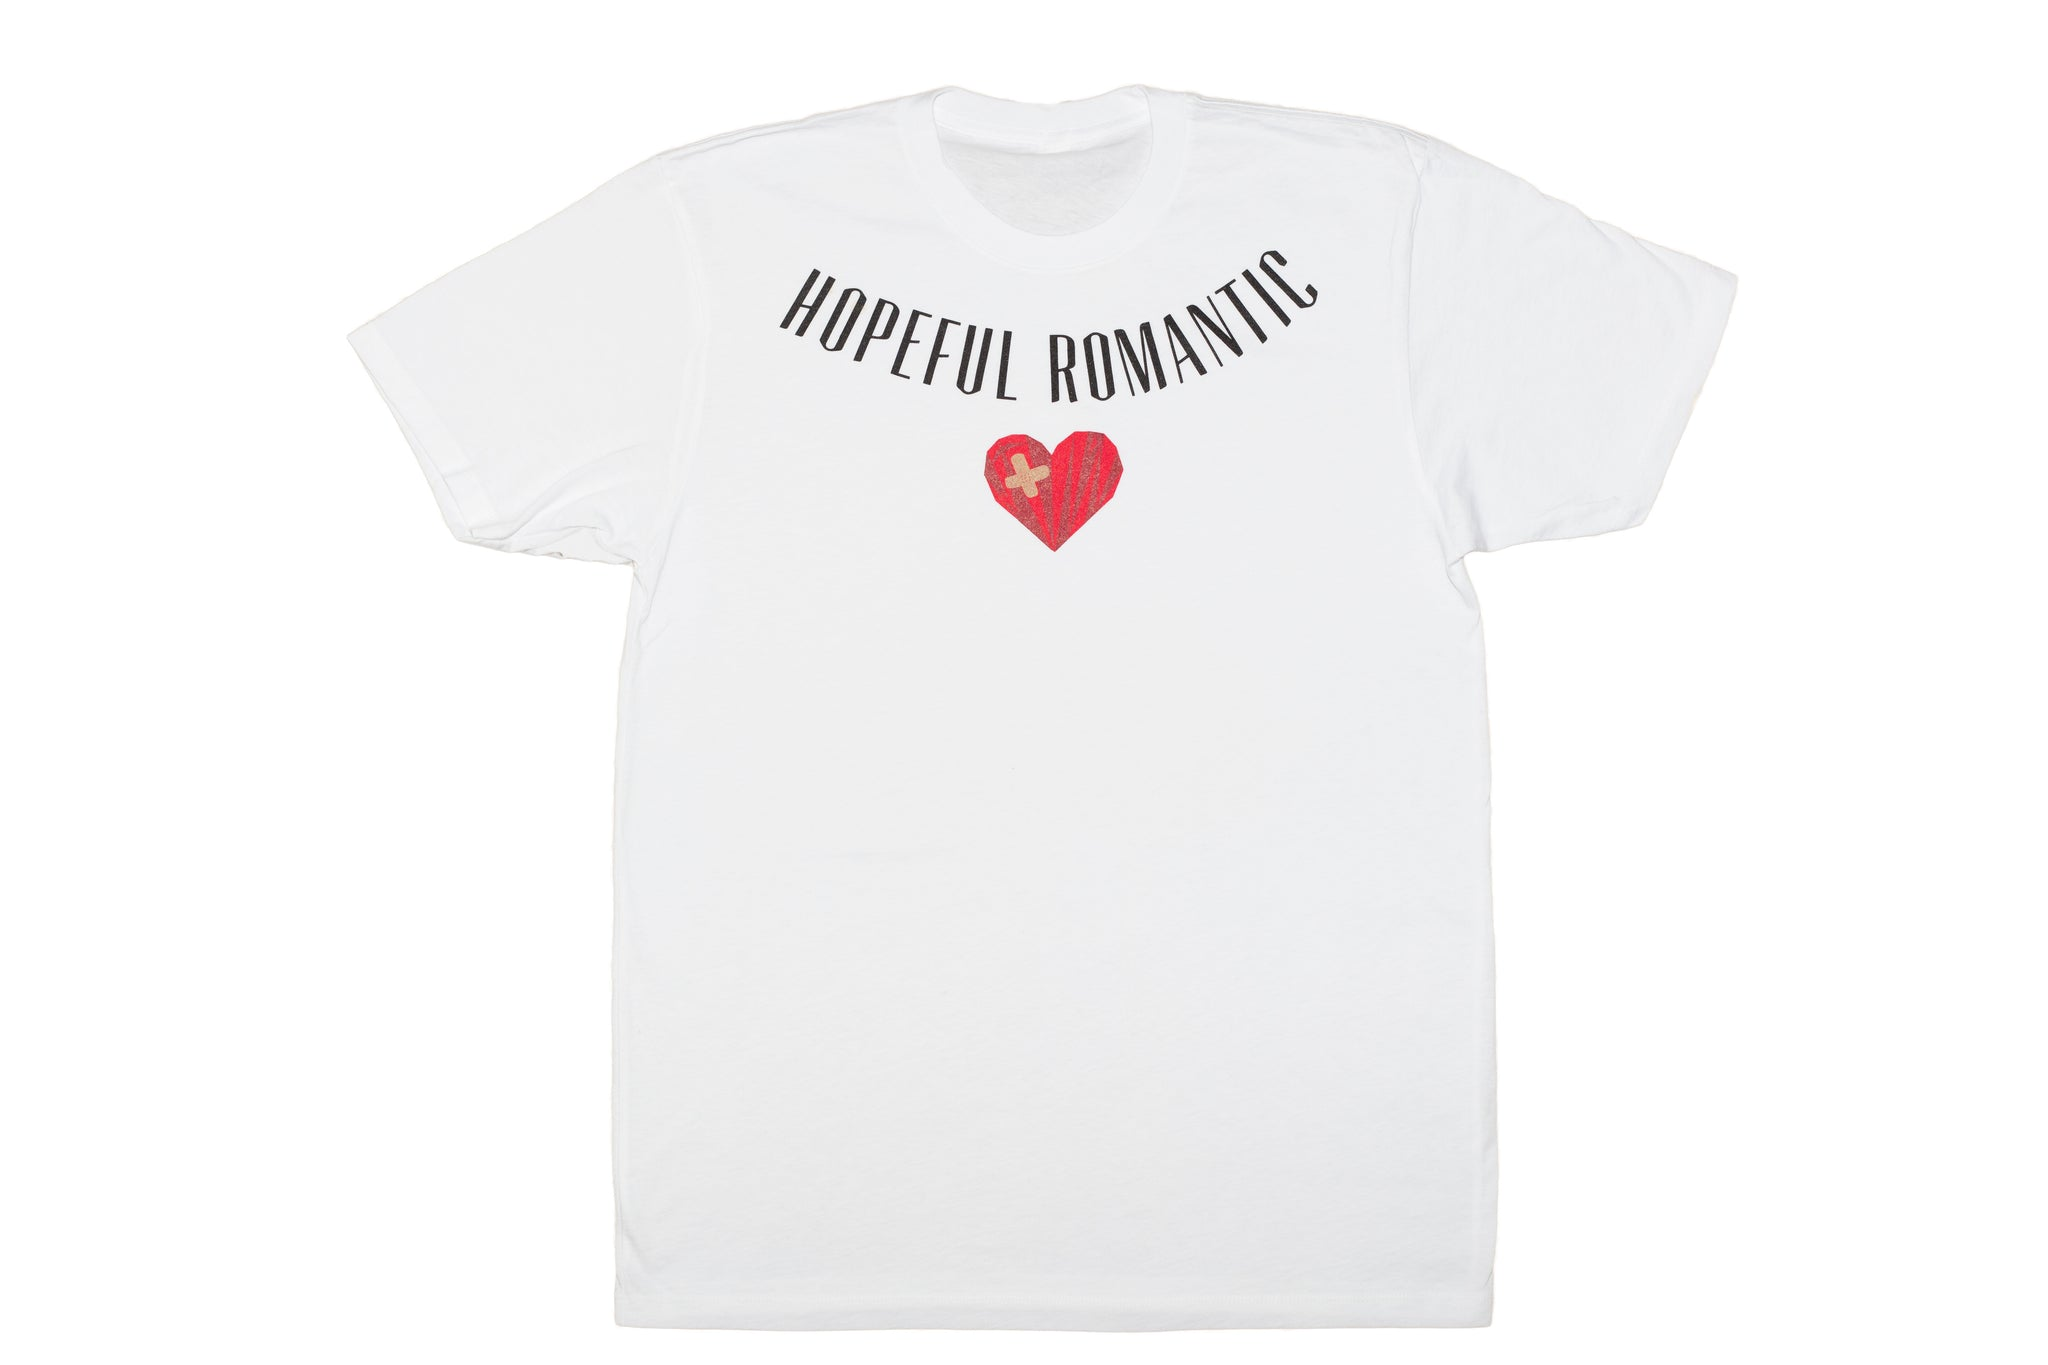 Hopeful Romantic tee - White